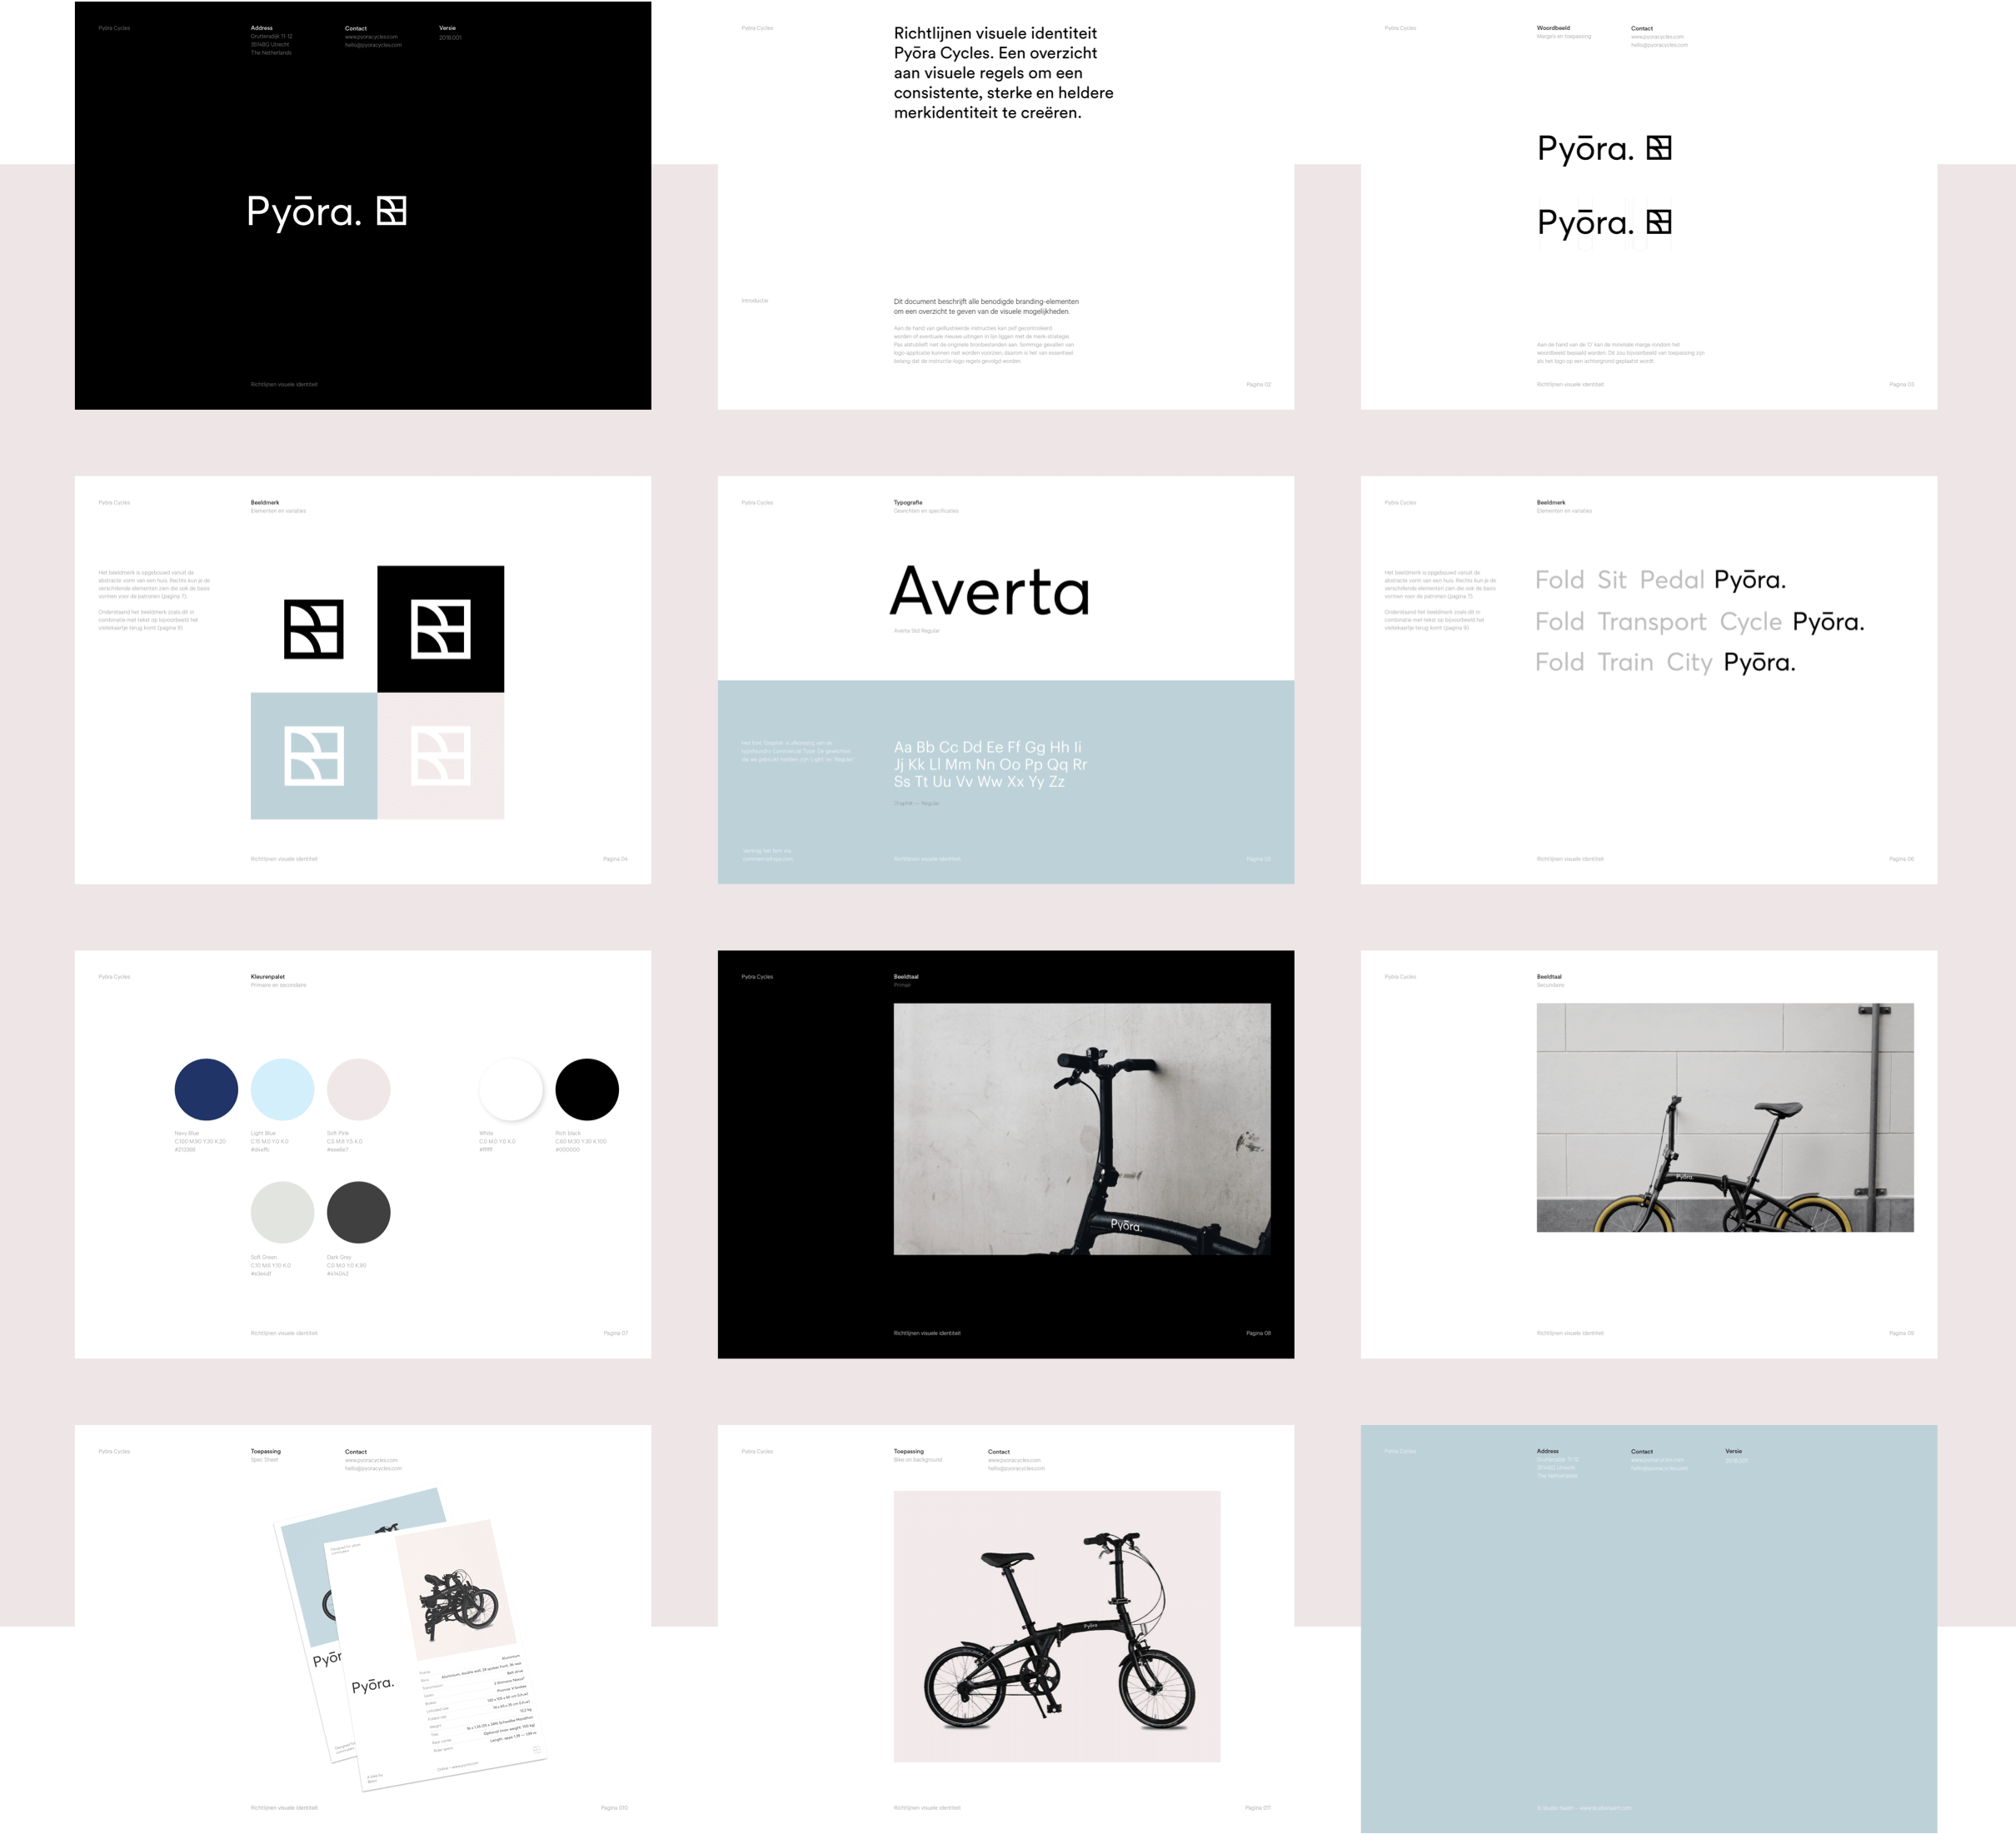 Guideline pages for the Pyora brand